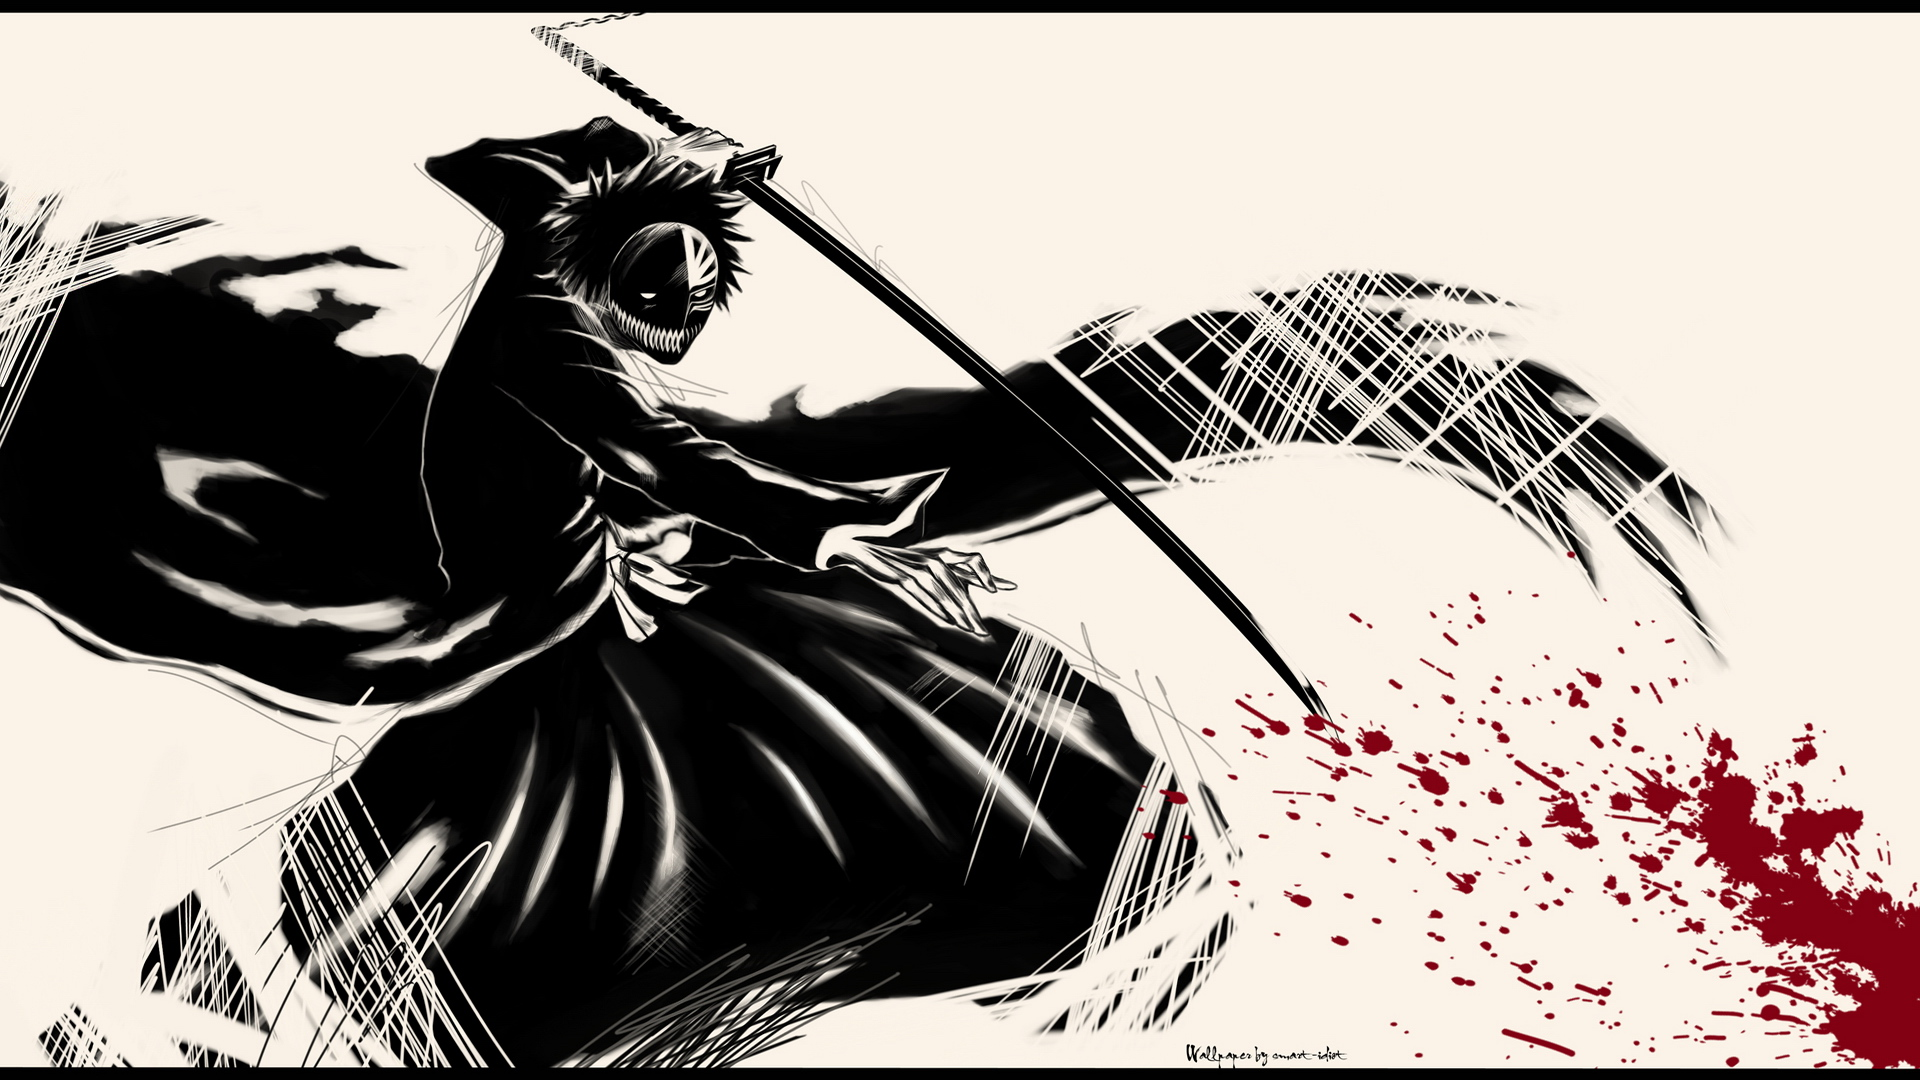 bleach wallpaper 1920 x 1080 - photo #11